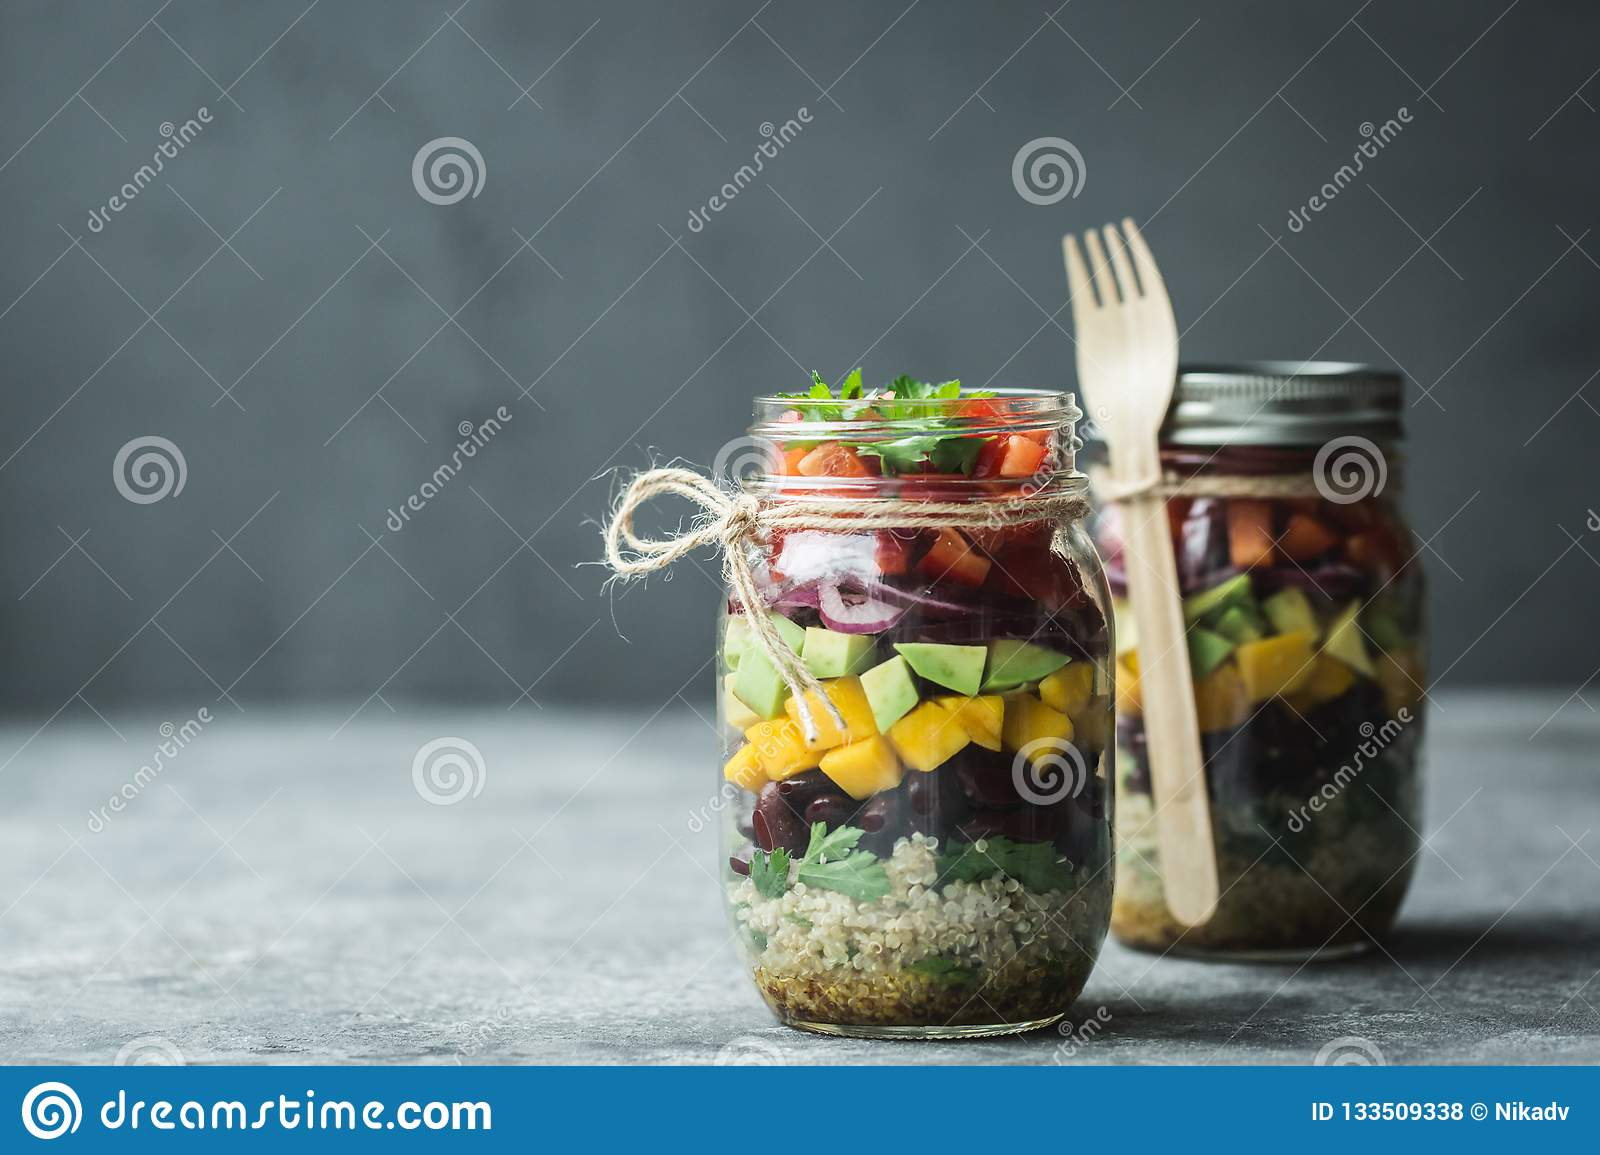 Healthy homemade salad in mason jar with quinoa and vegetables. Healthy food, clean eating, diet and detox. Copy space